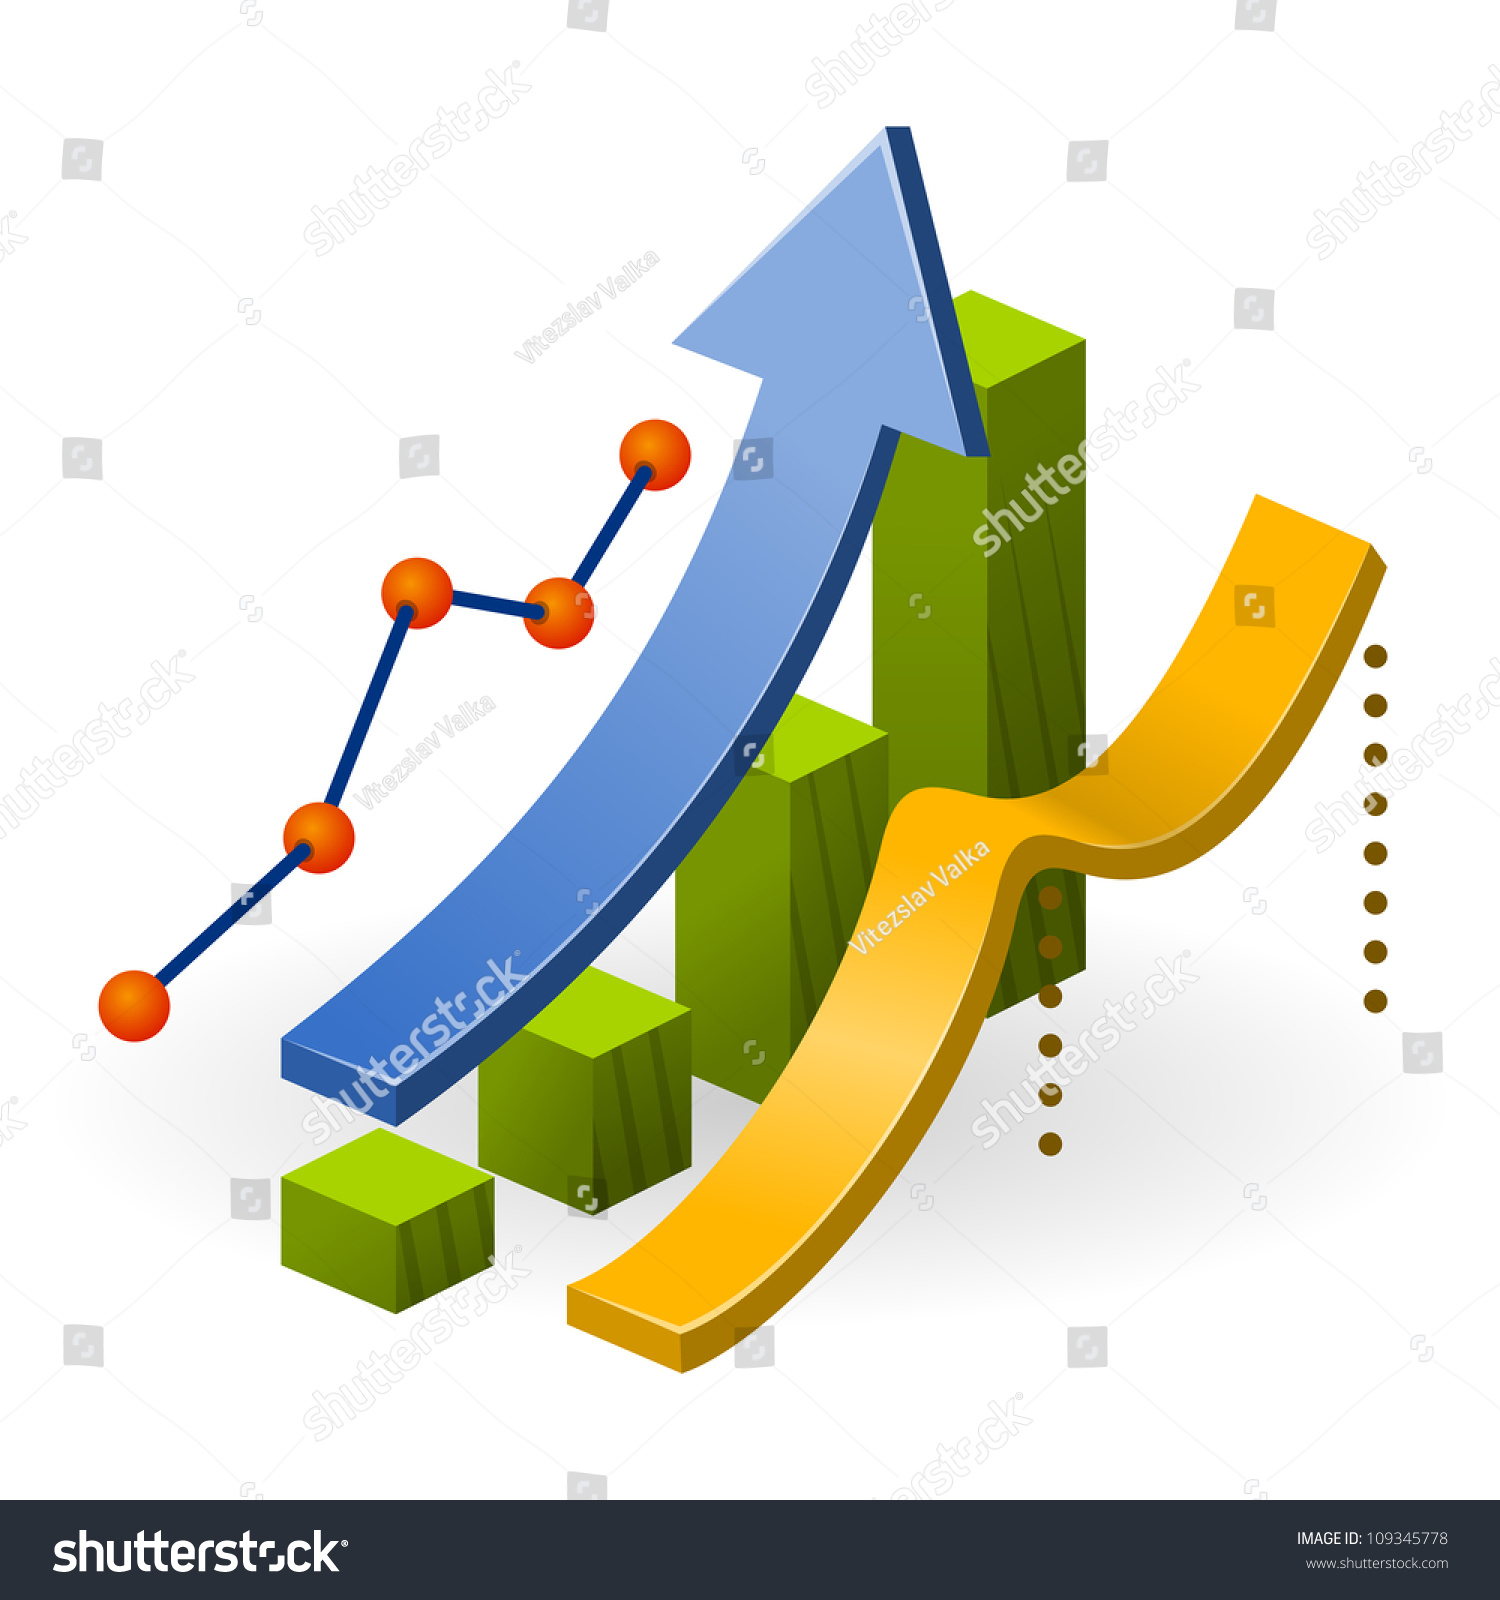 business performance chart ascending diagram arrow stock vector business performance chart ascending diagram arrow and three types of data